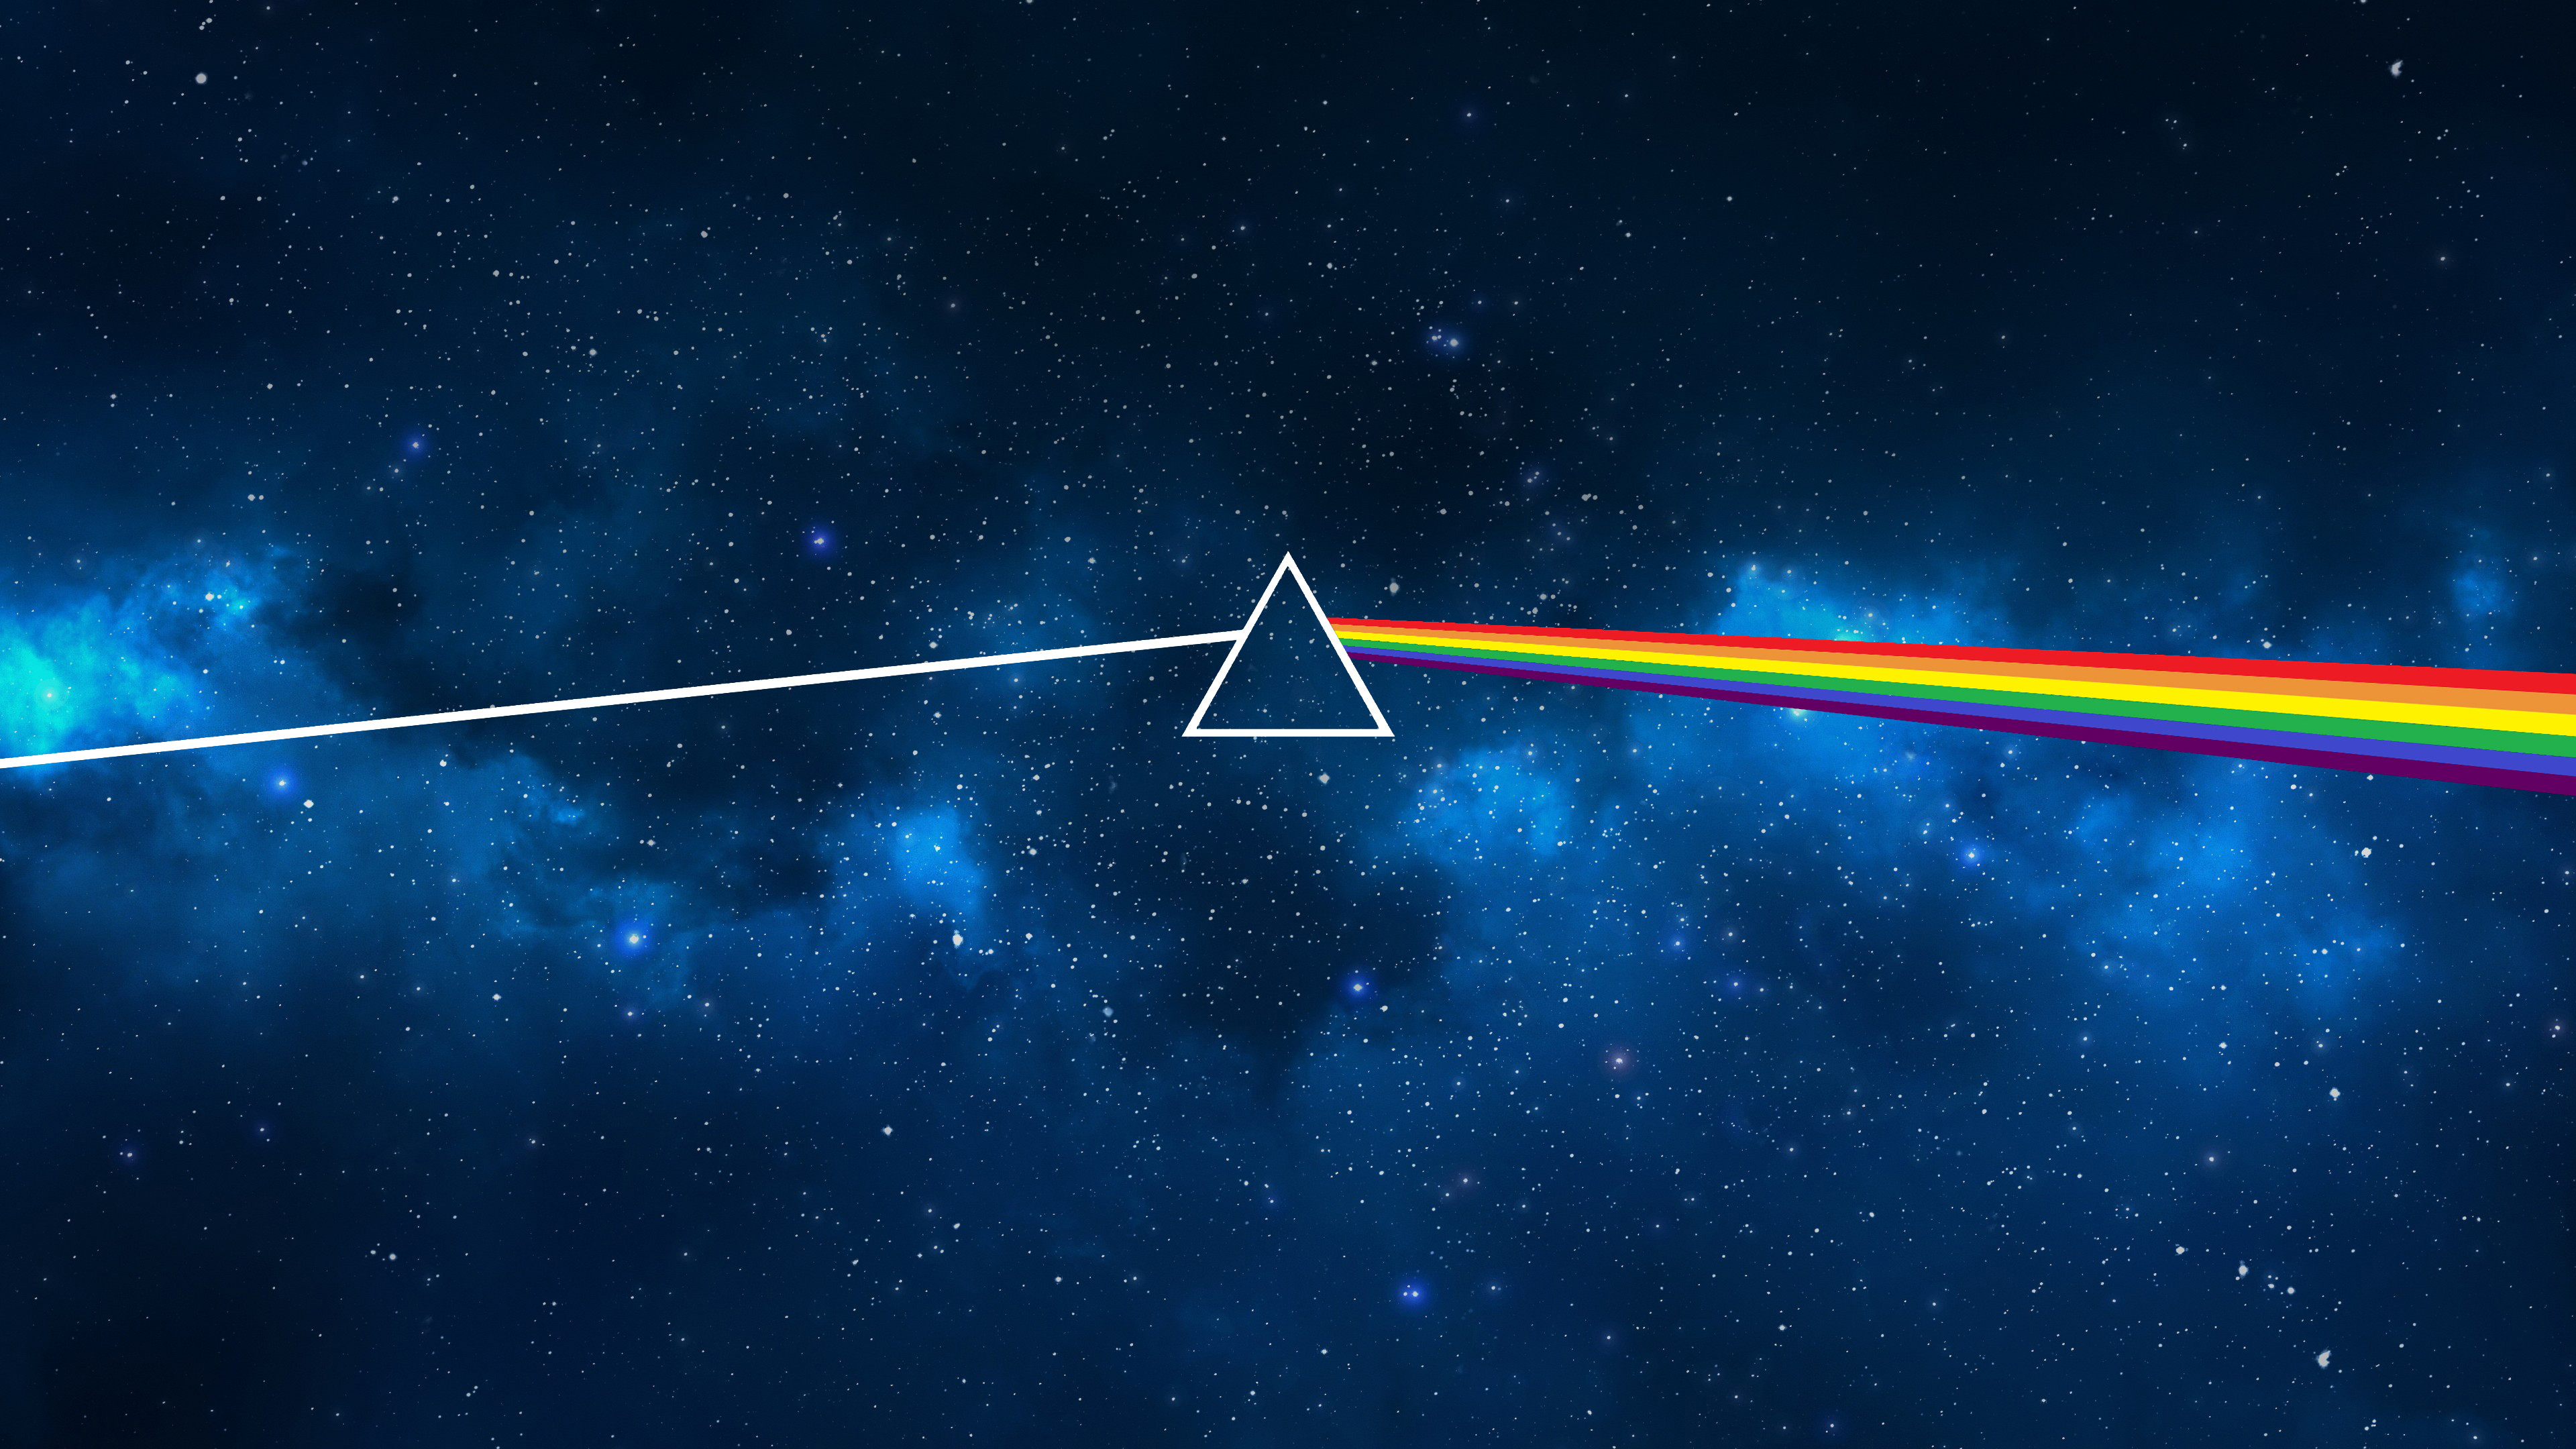 3840x2160 Dark Side of the Moon Wallpapers